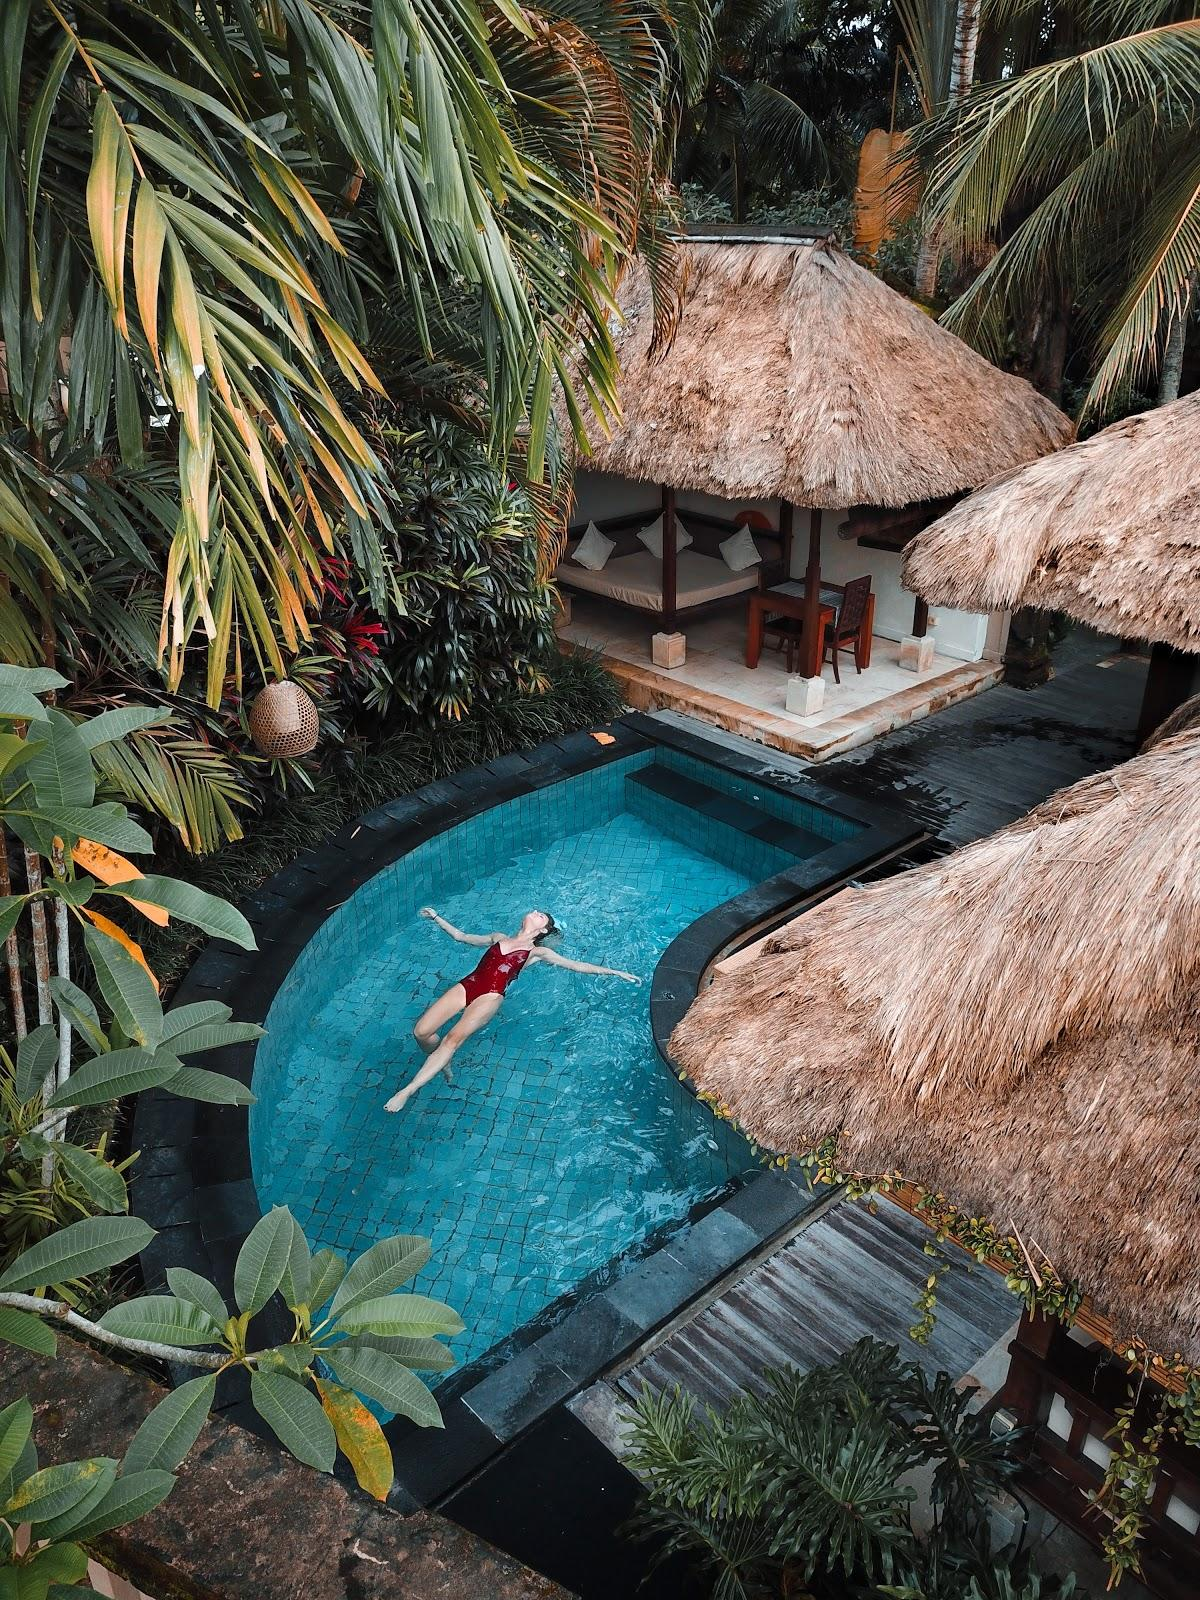 a girl swimming the pool of a tropical hotel